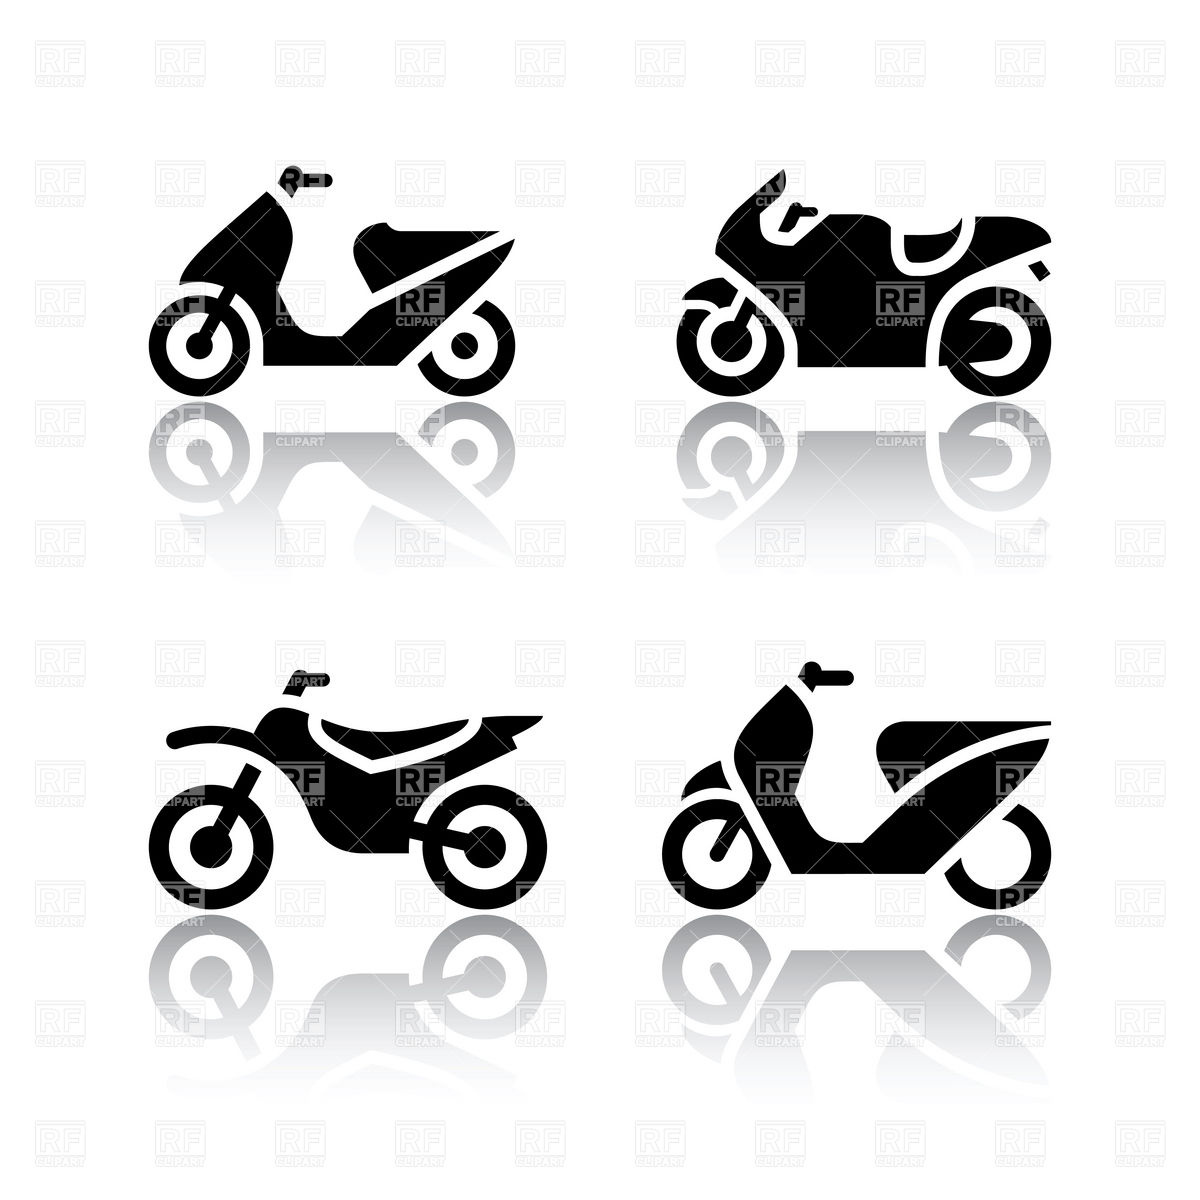 17 Motorcycle Motor Vector Images - Motorcycle Silhouette ...